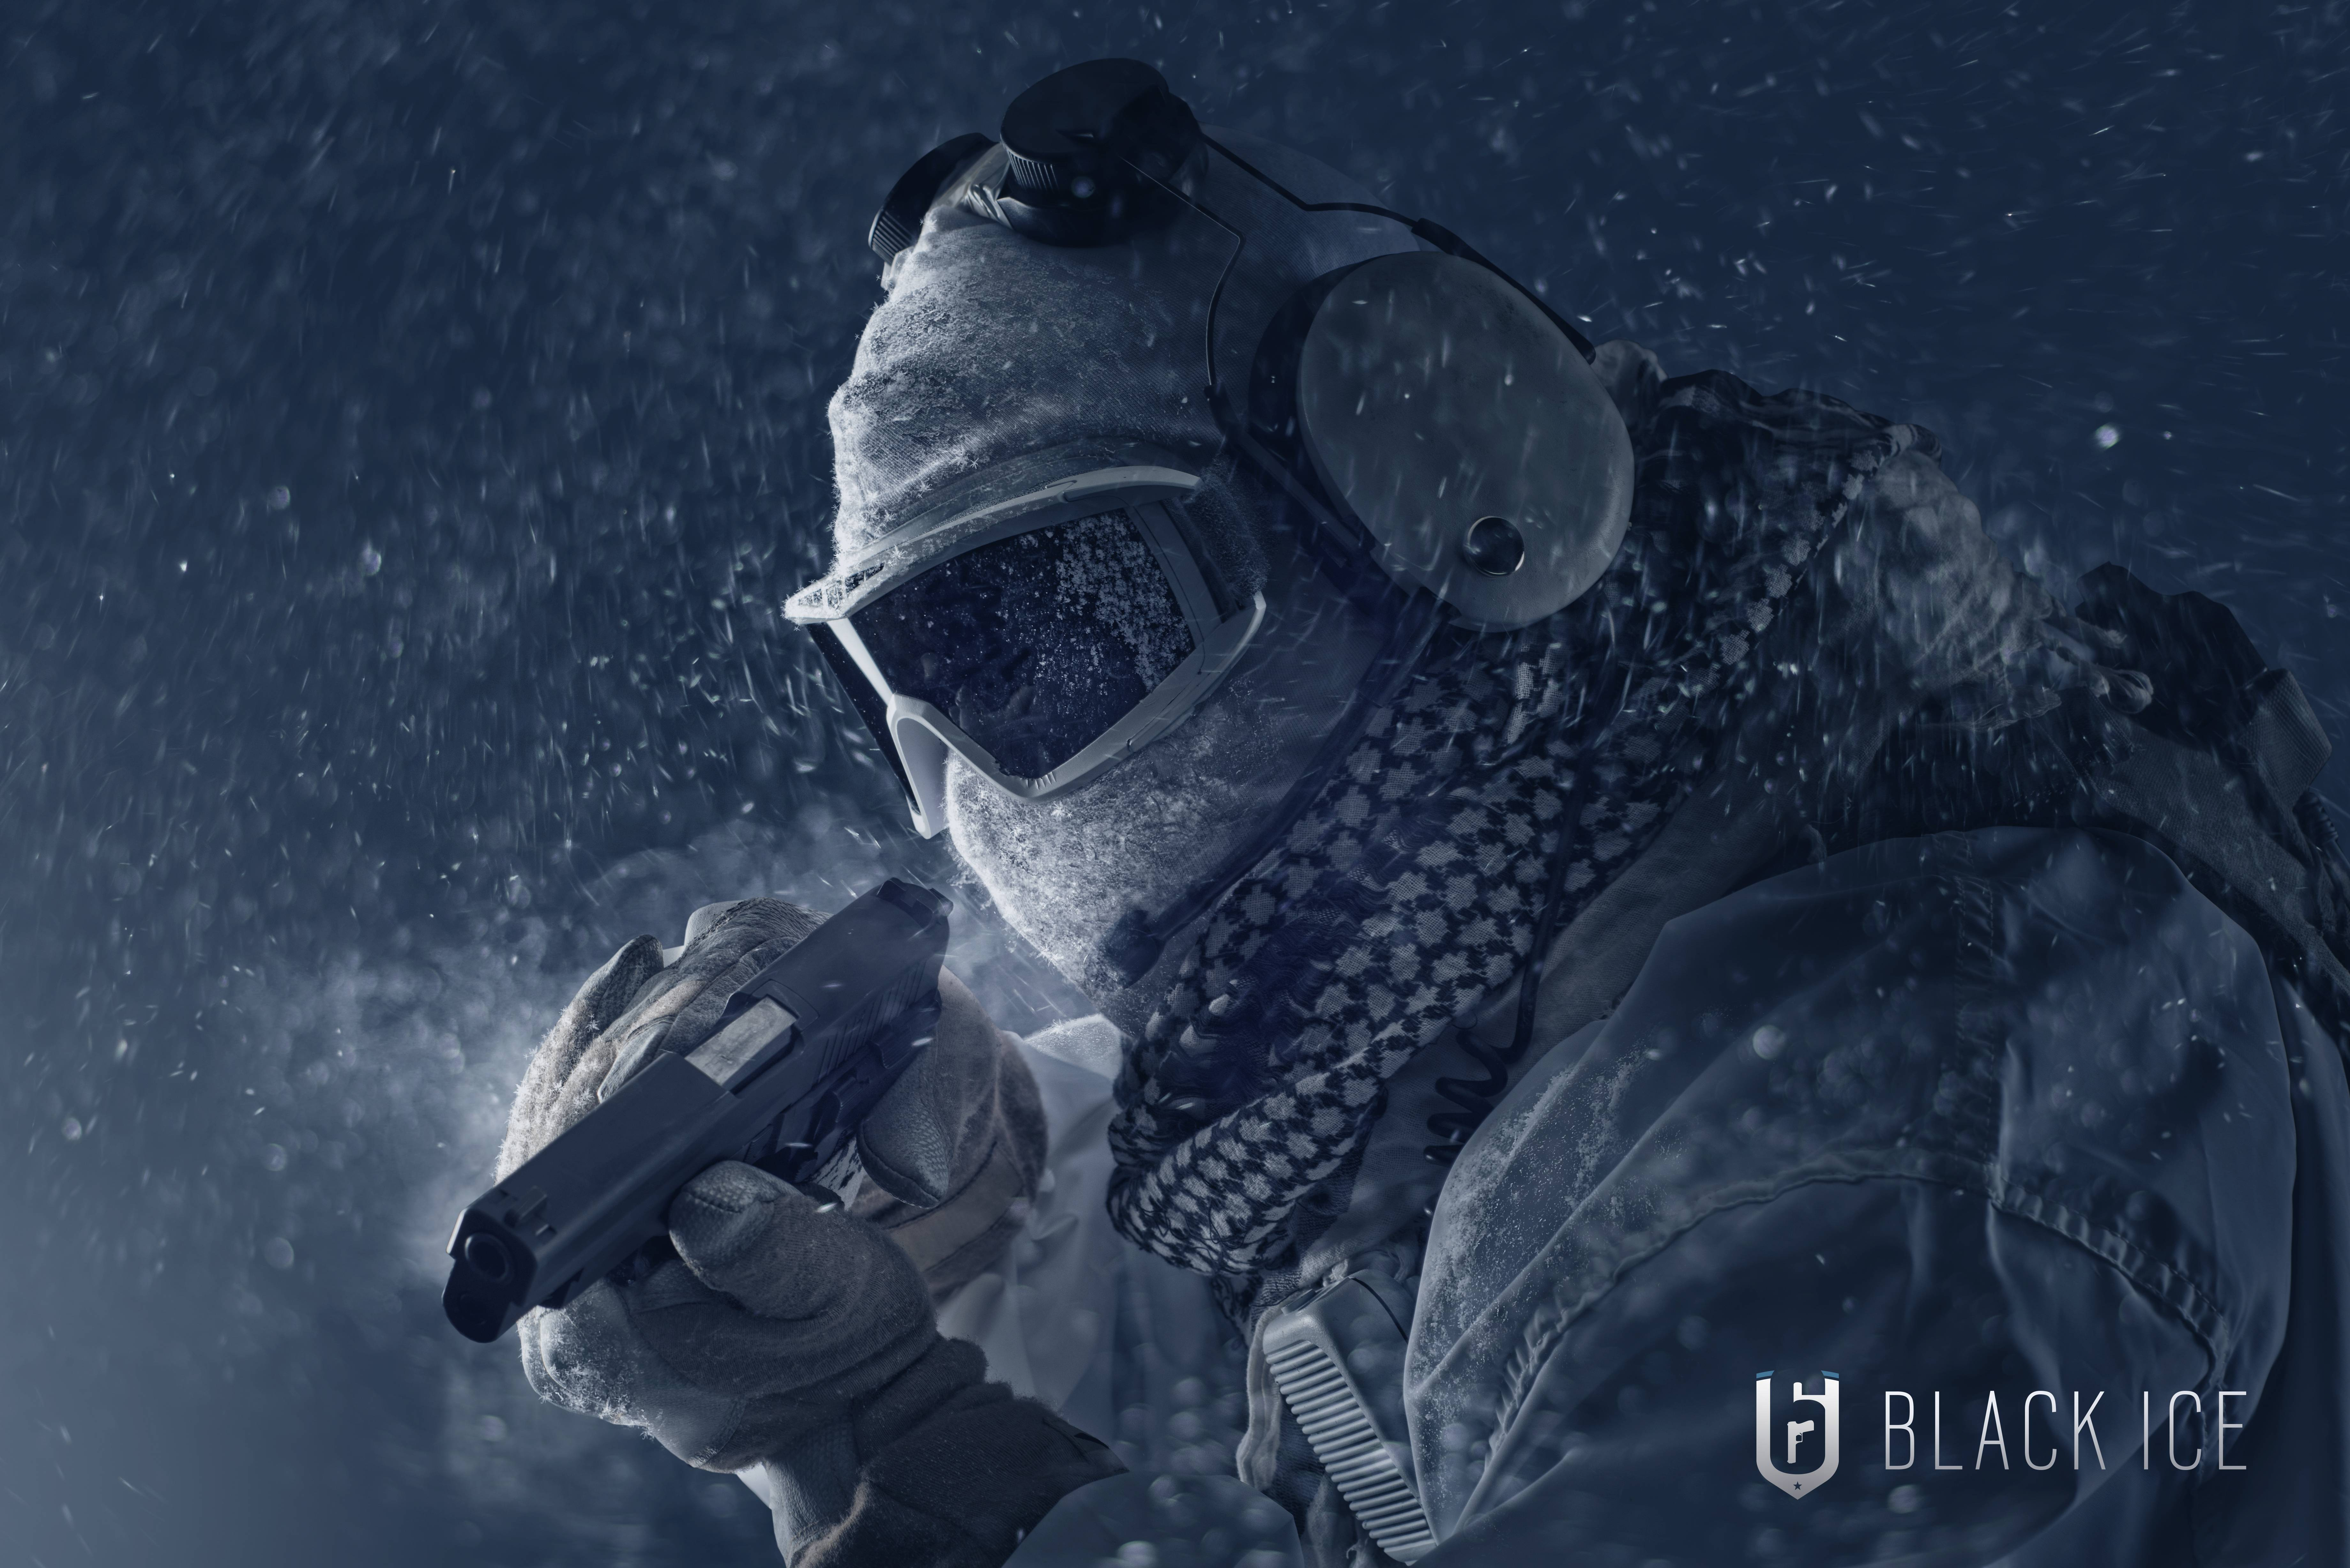 Rainbow Six Siege Wallpaper Black Ice 471527 Hd Wallpaper